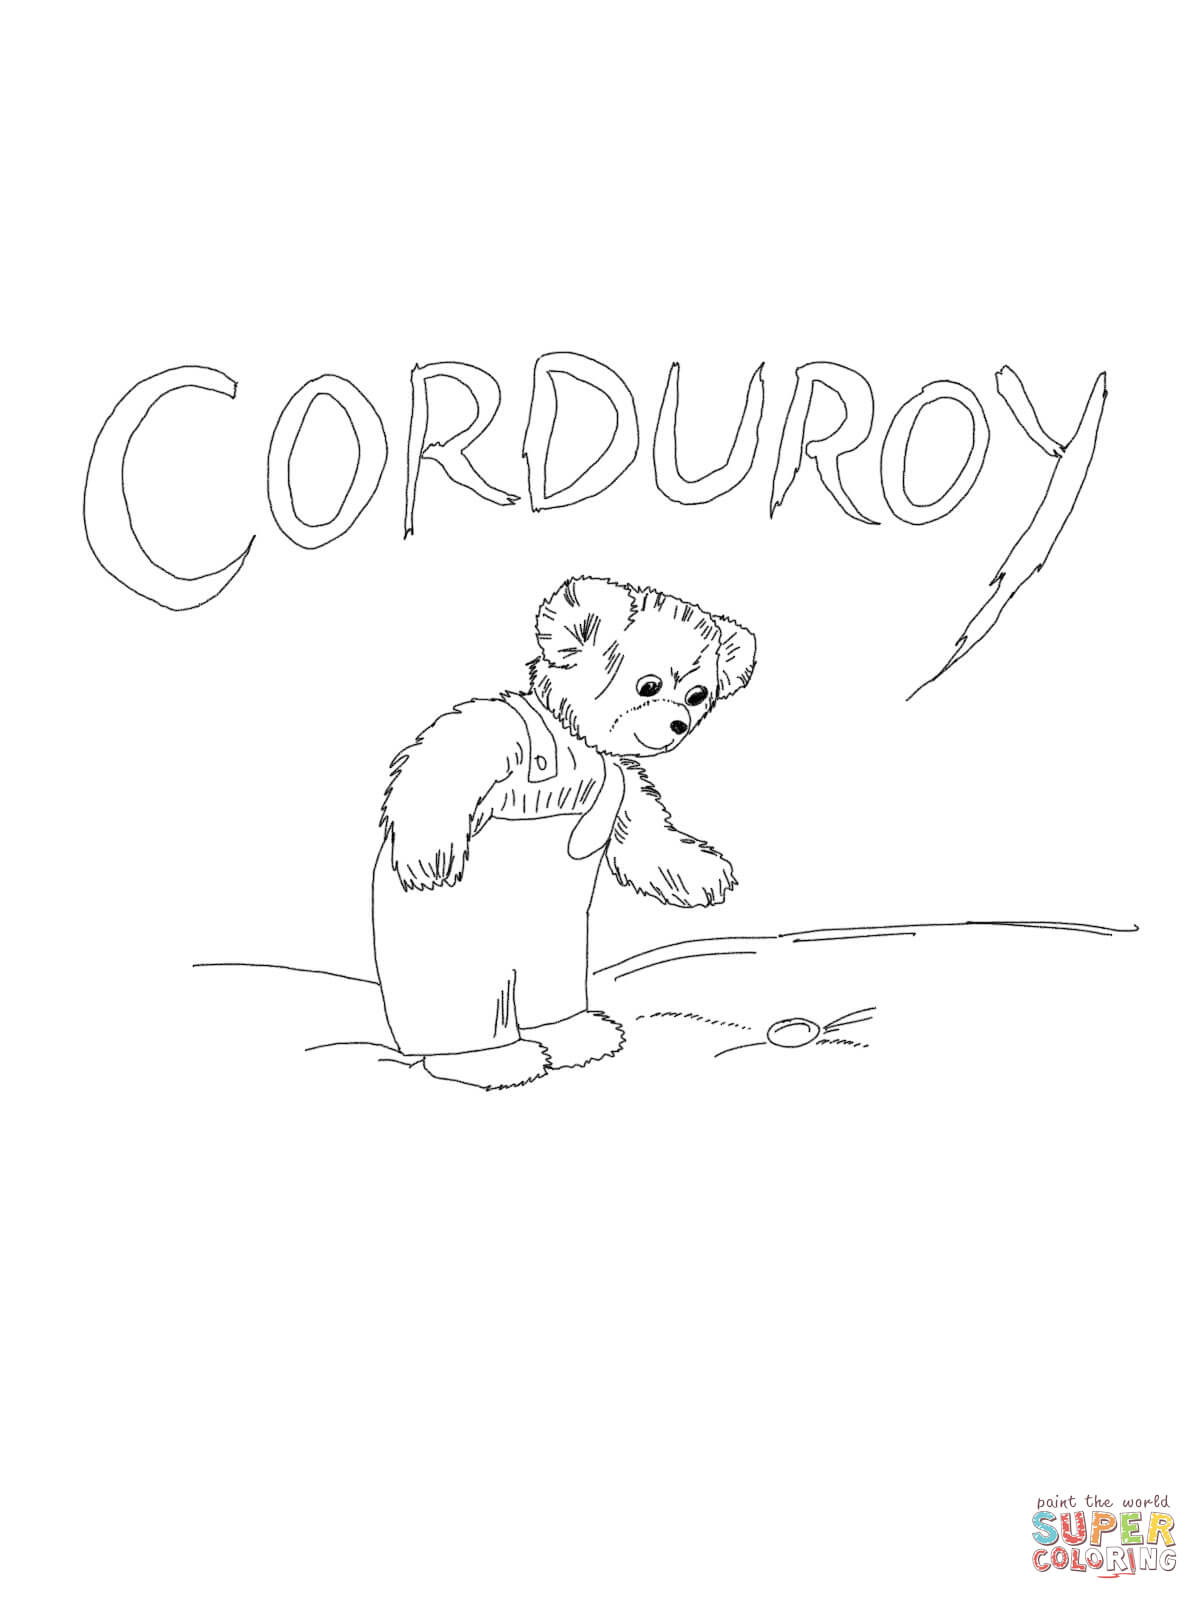 Adult Cute Corduroy Coloring Page Gallery Images best corduroy printables az coloring pages the bear page images